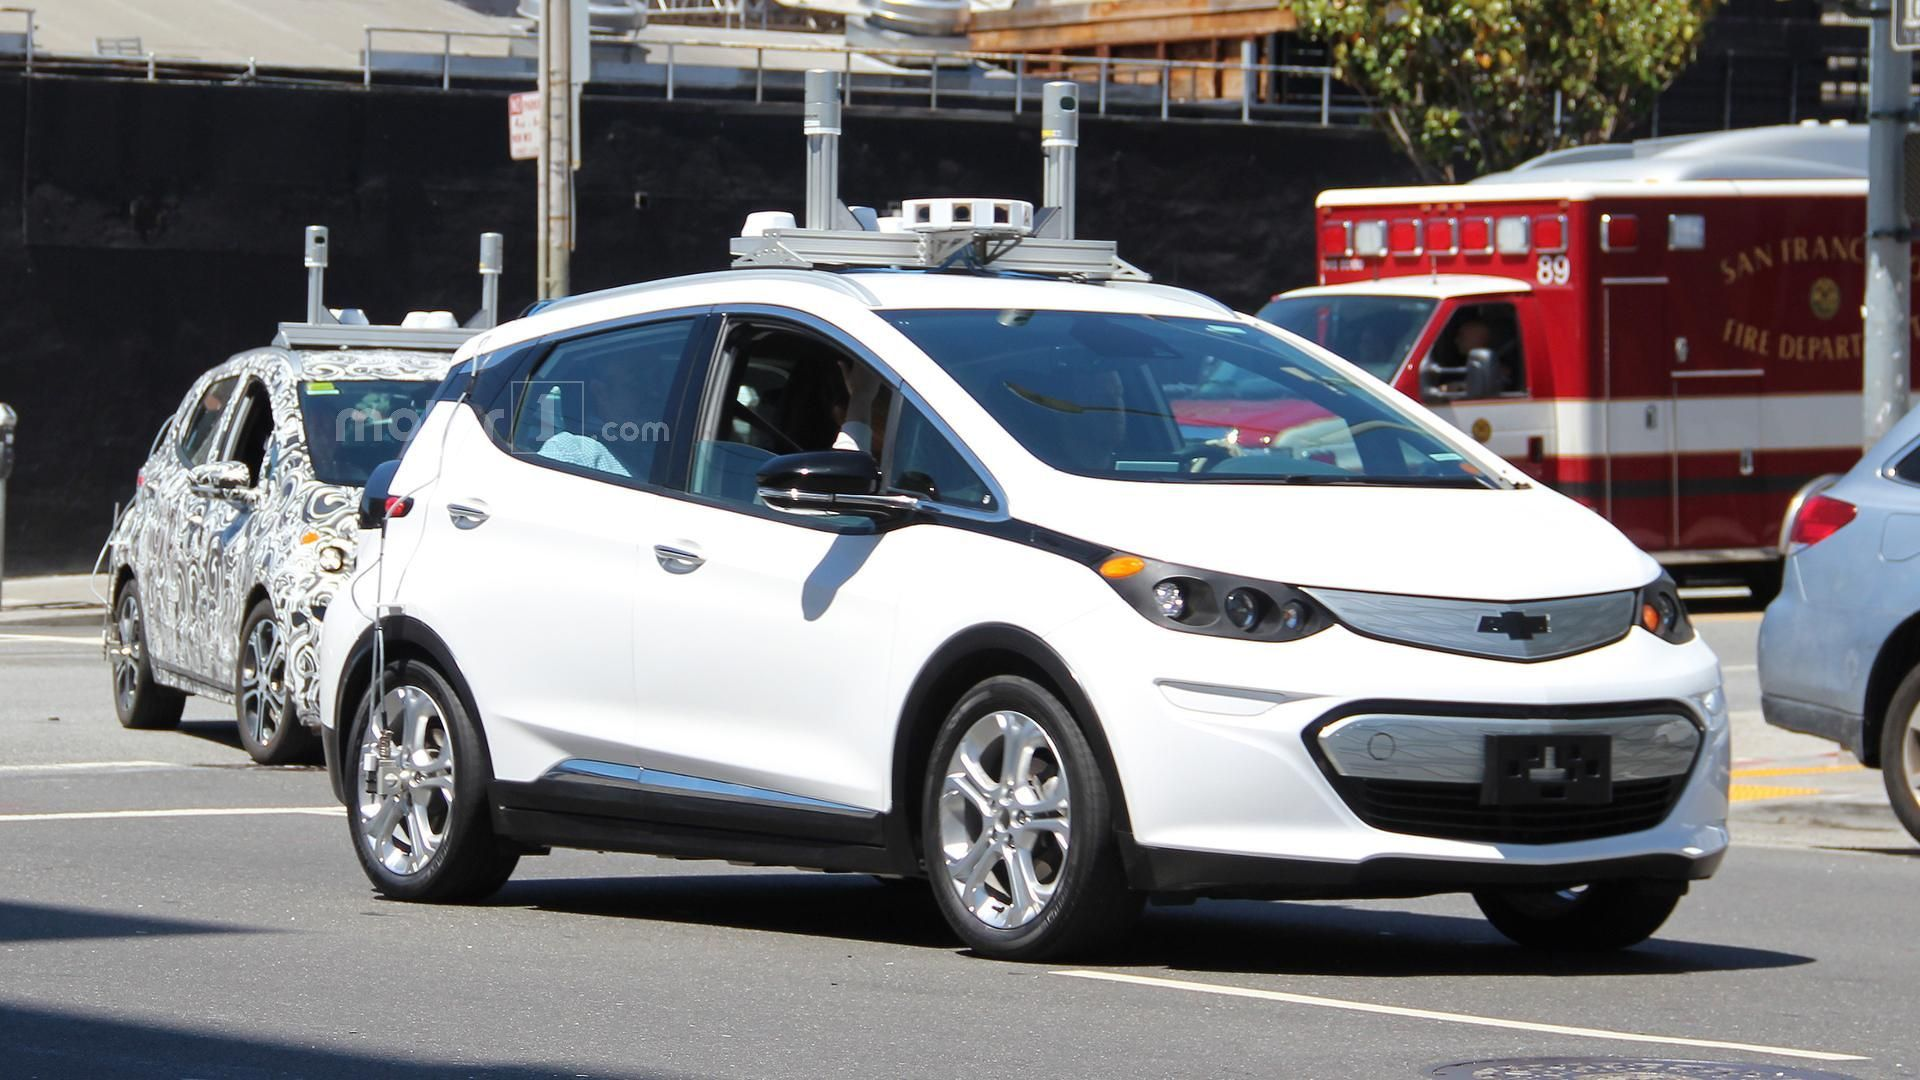 Autonomous car sales predicted to reach 21M by 2035 according to study